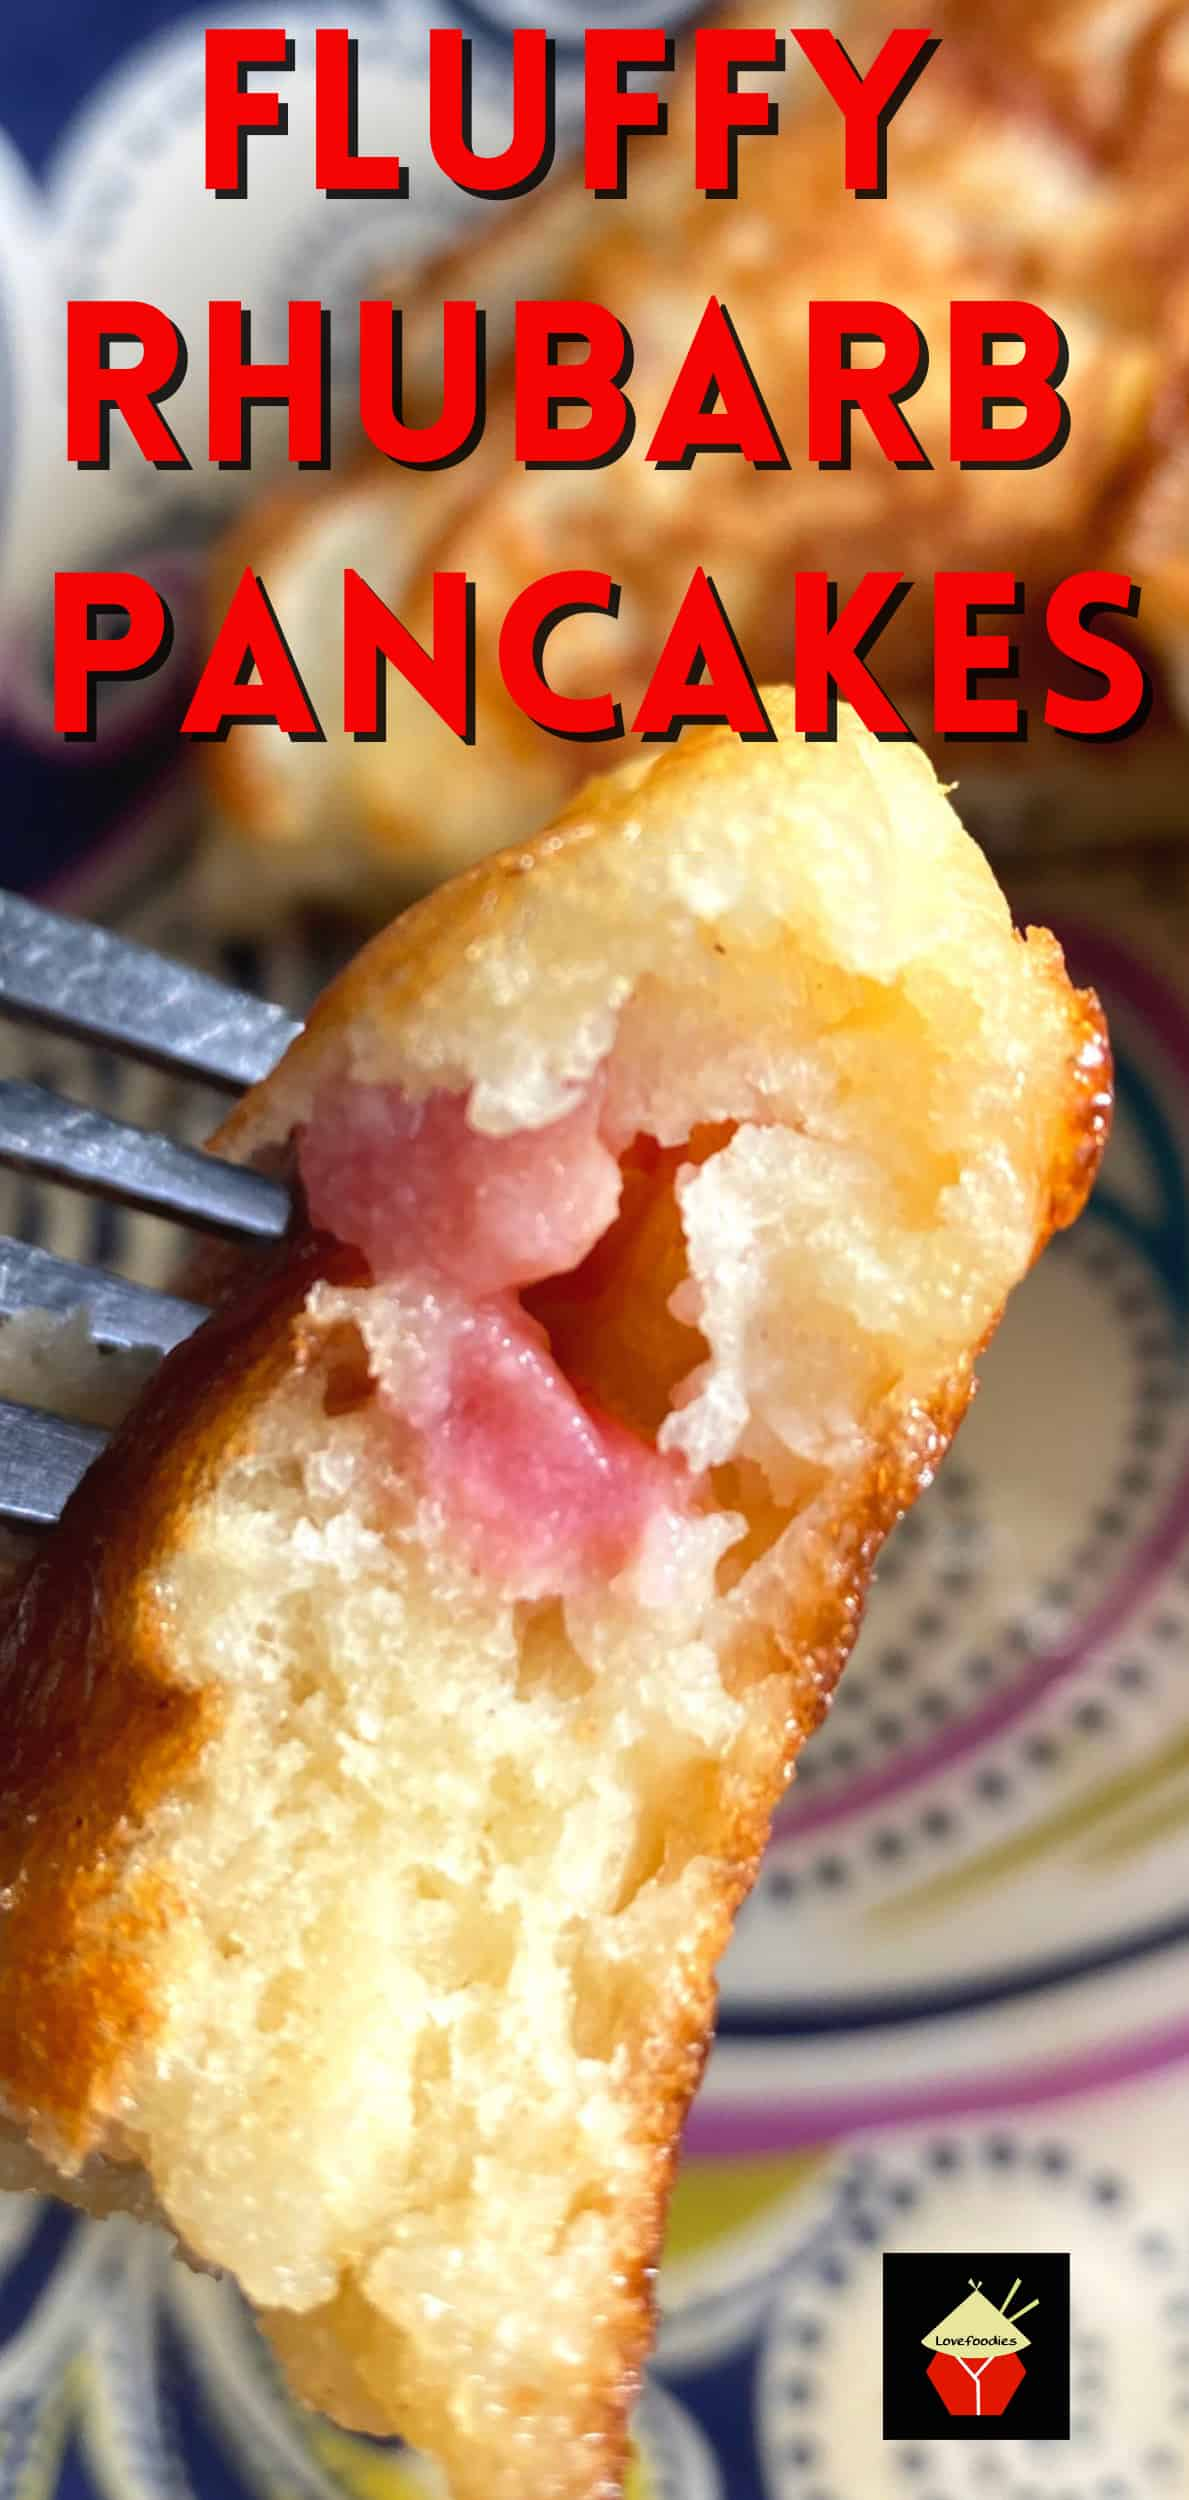 Fluffy Rhubarb Pancakes. Quick and easy breakfast pancakes, bursting with juicy rhubarb. Light and as fluffy as a feather, with no added fat. Serve warm with a drizzle of maple syrup or honey.